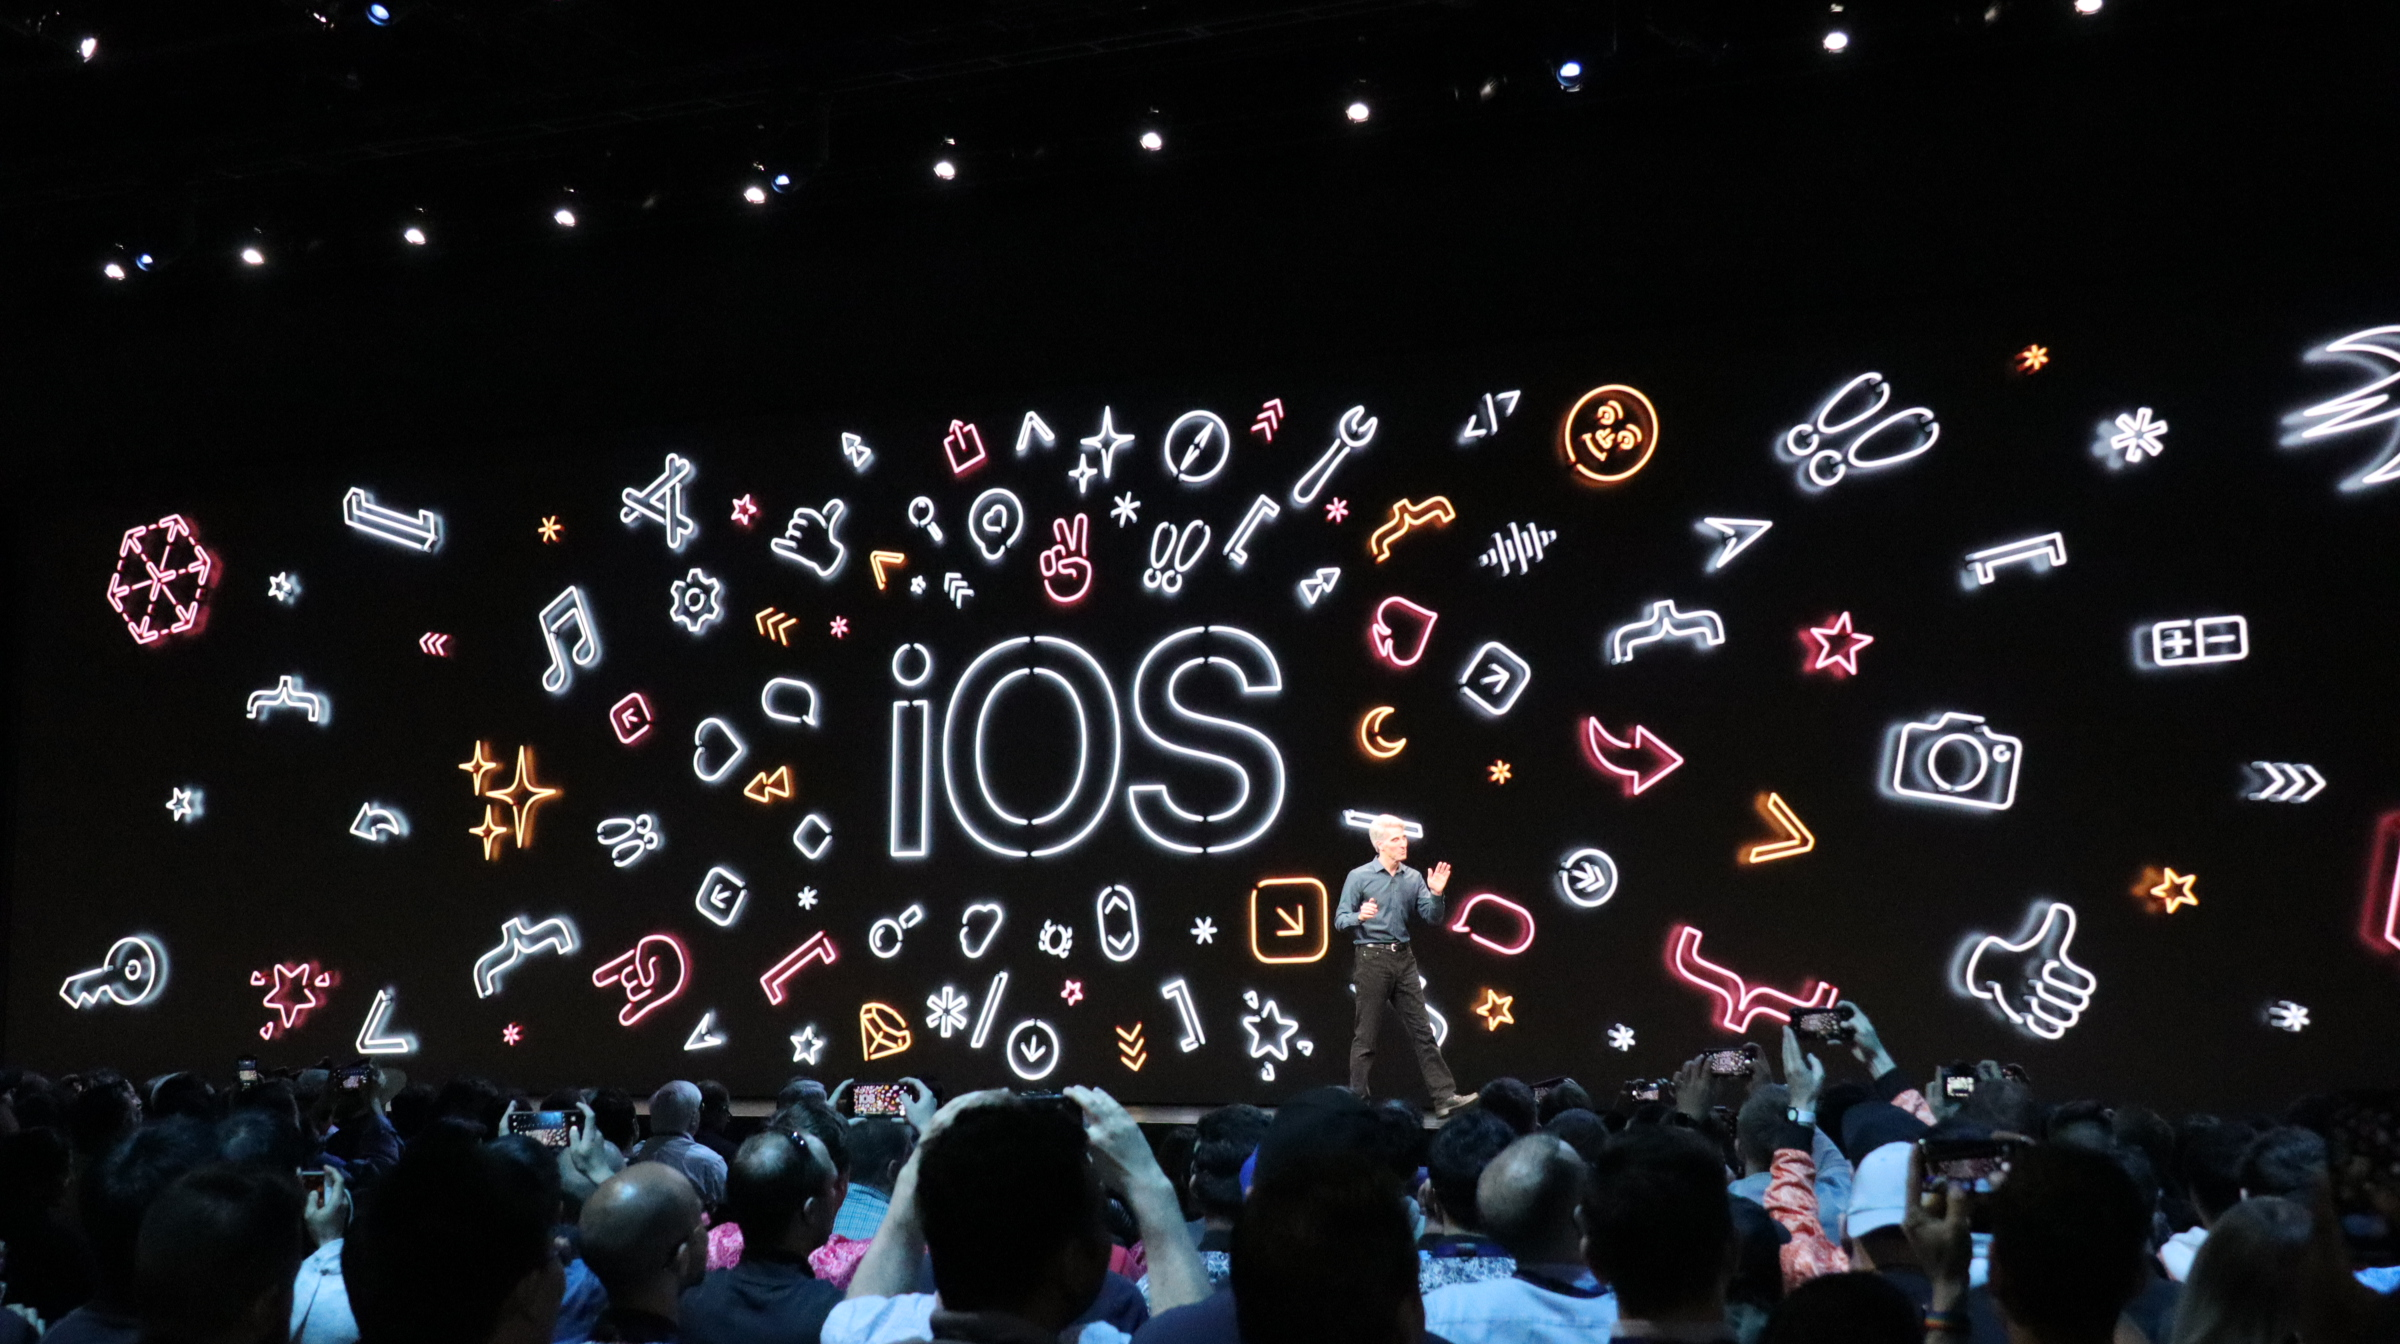 iOS 14 release date, features we want and rumors